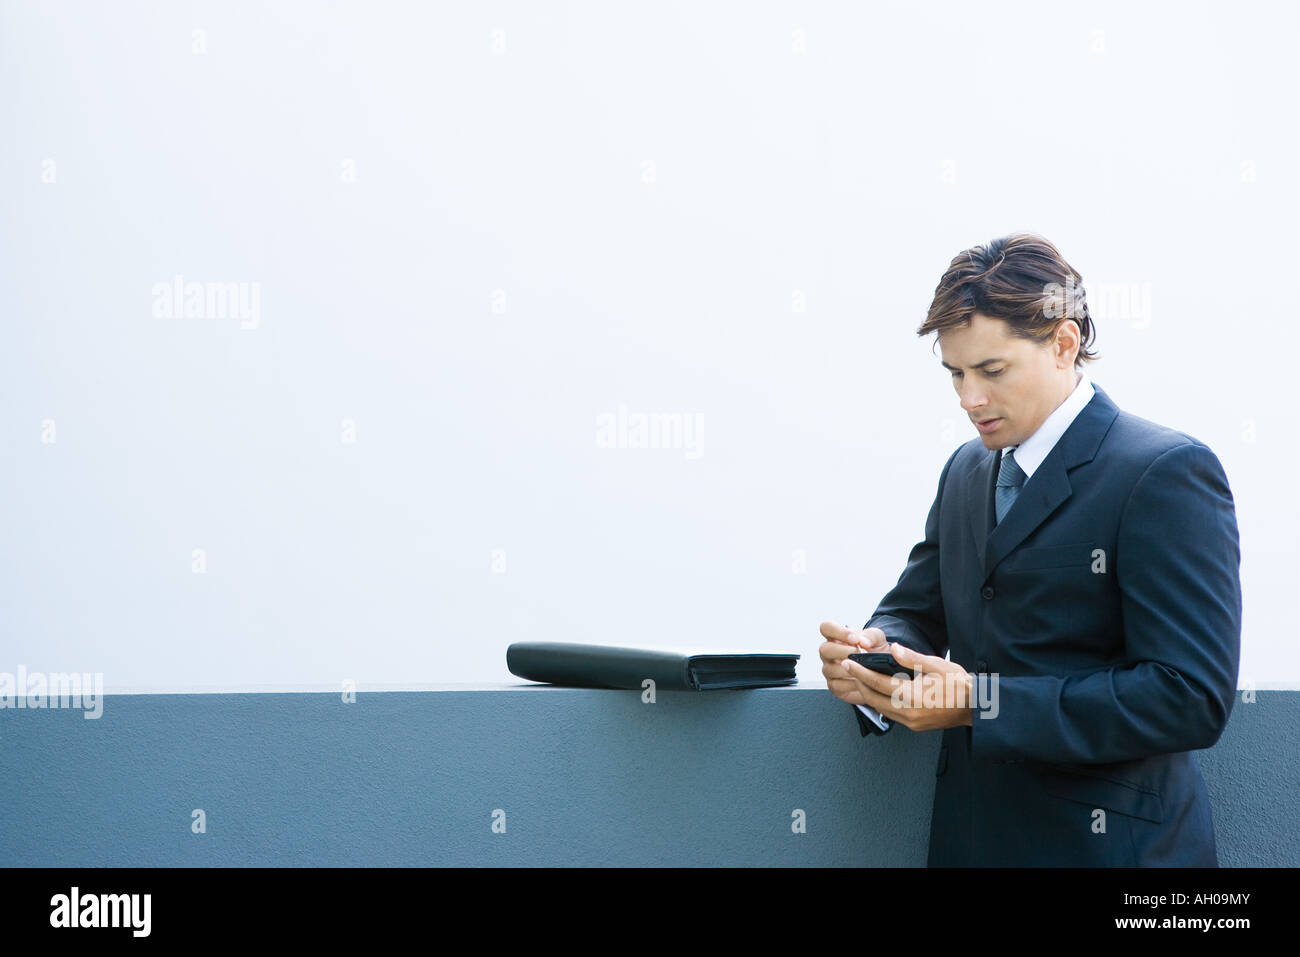 Young businessman using palmtop, looking down - Stock Image